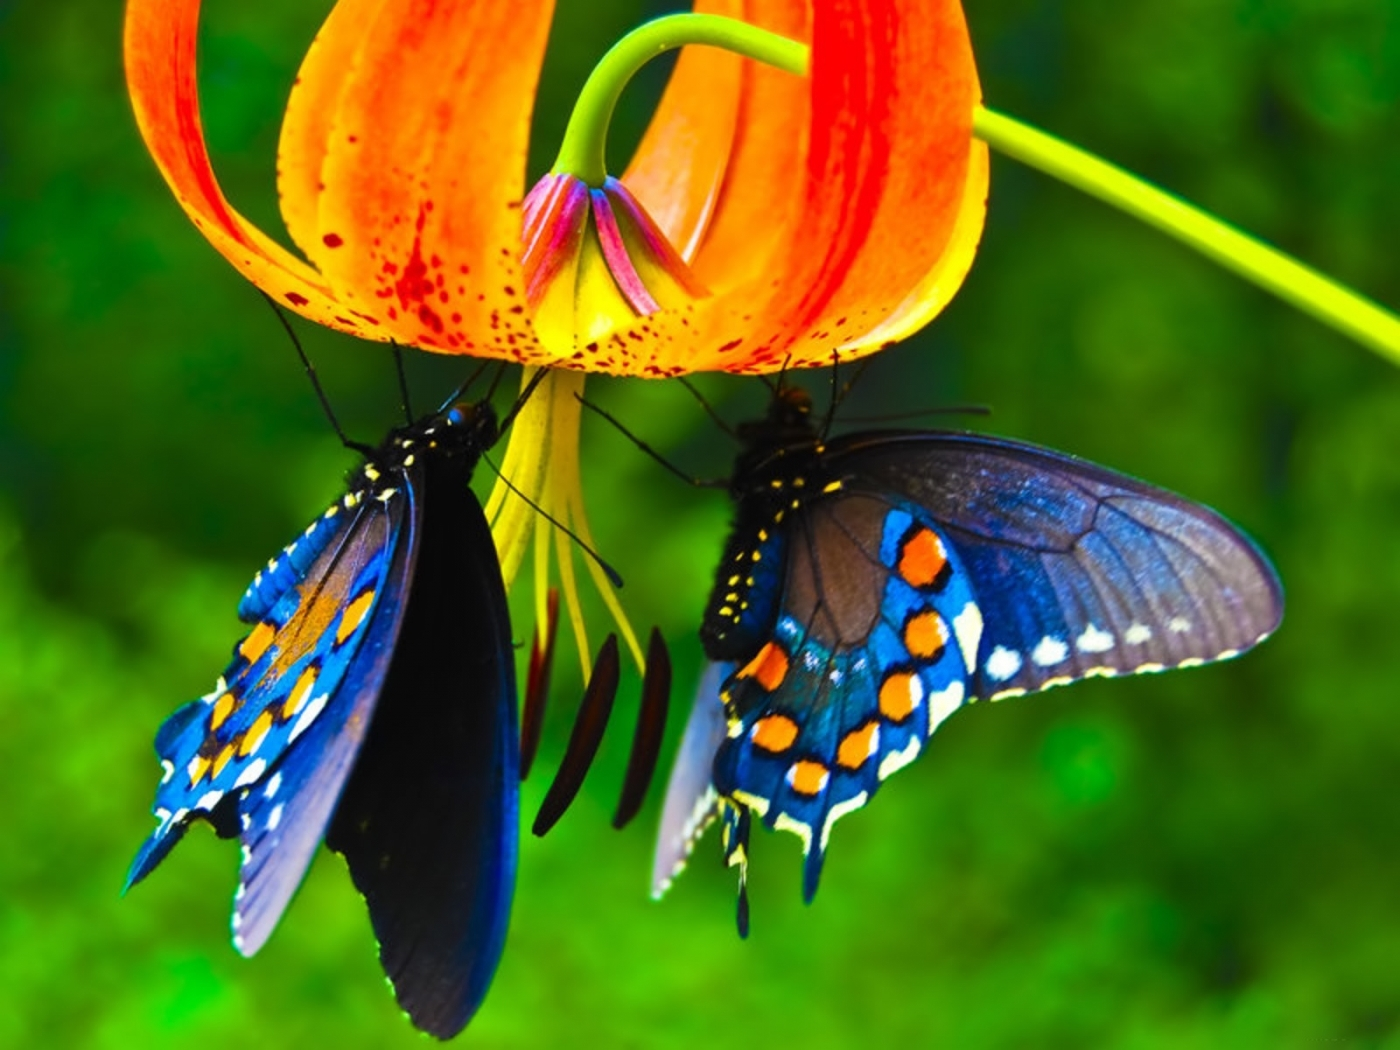 25595 download wallpaper Insects, Butterflies, Plants, Flowers screensavers and pictures for free